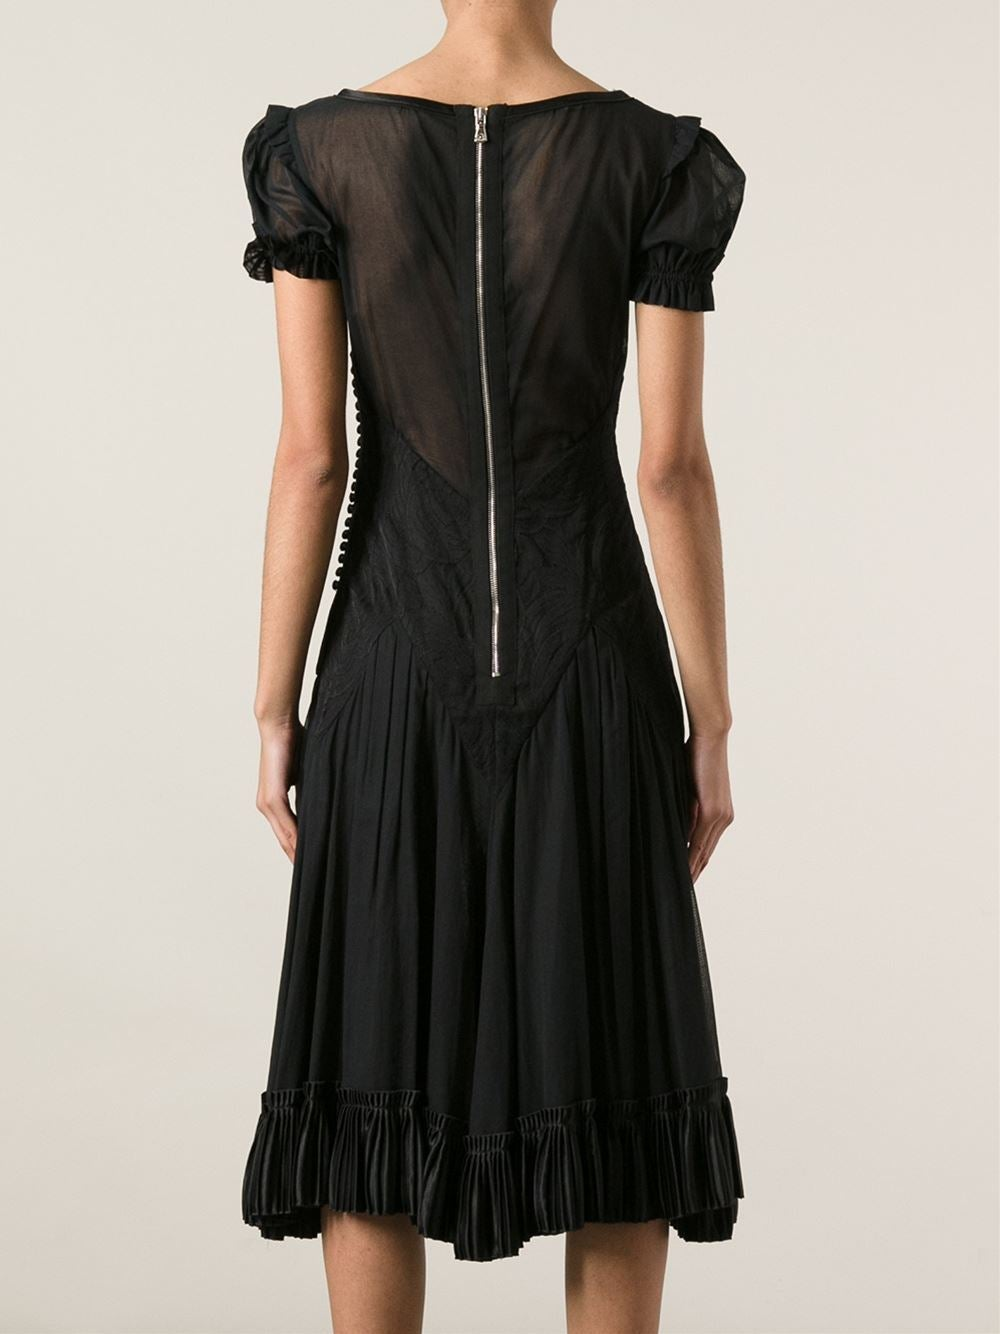 Black cotton blend semi sheer kaftan dress from Dolce & Gabbana Vintage featuring a scoop neck with a bow detail, short sleeves, a hook & eye fastening down the side, an embroidered pattern panel to the front and a knee length curtained skirt.